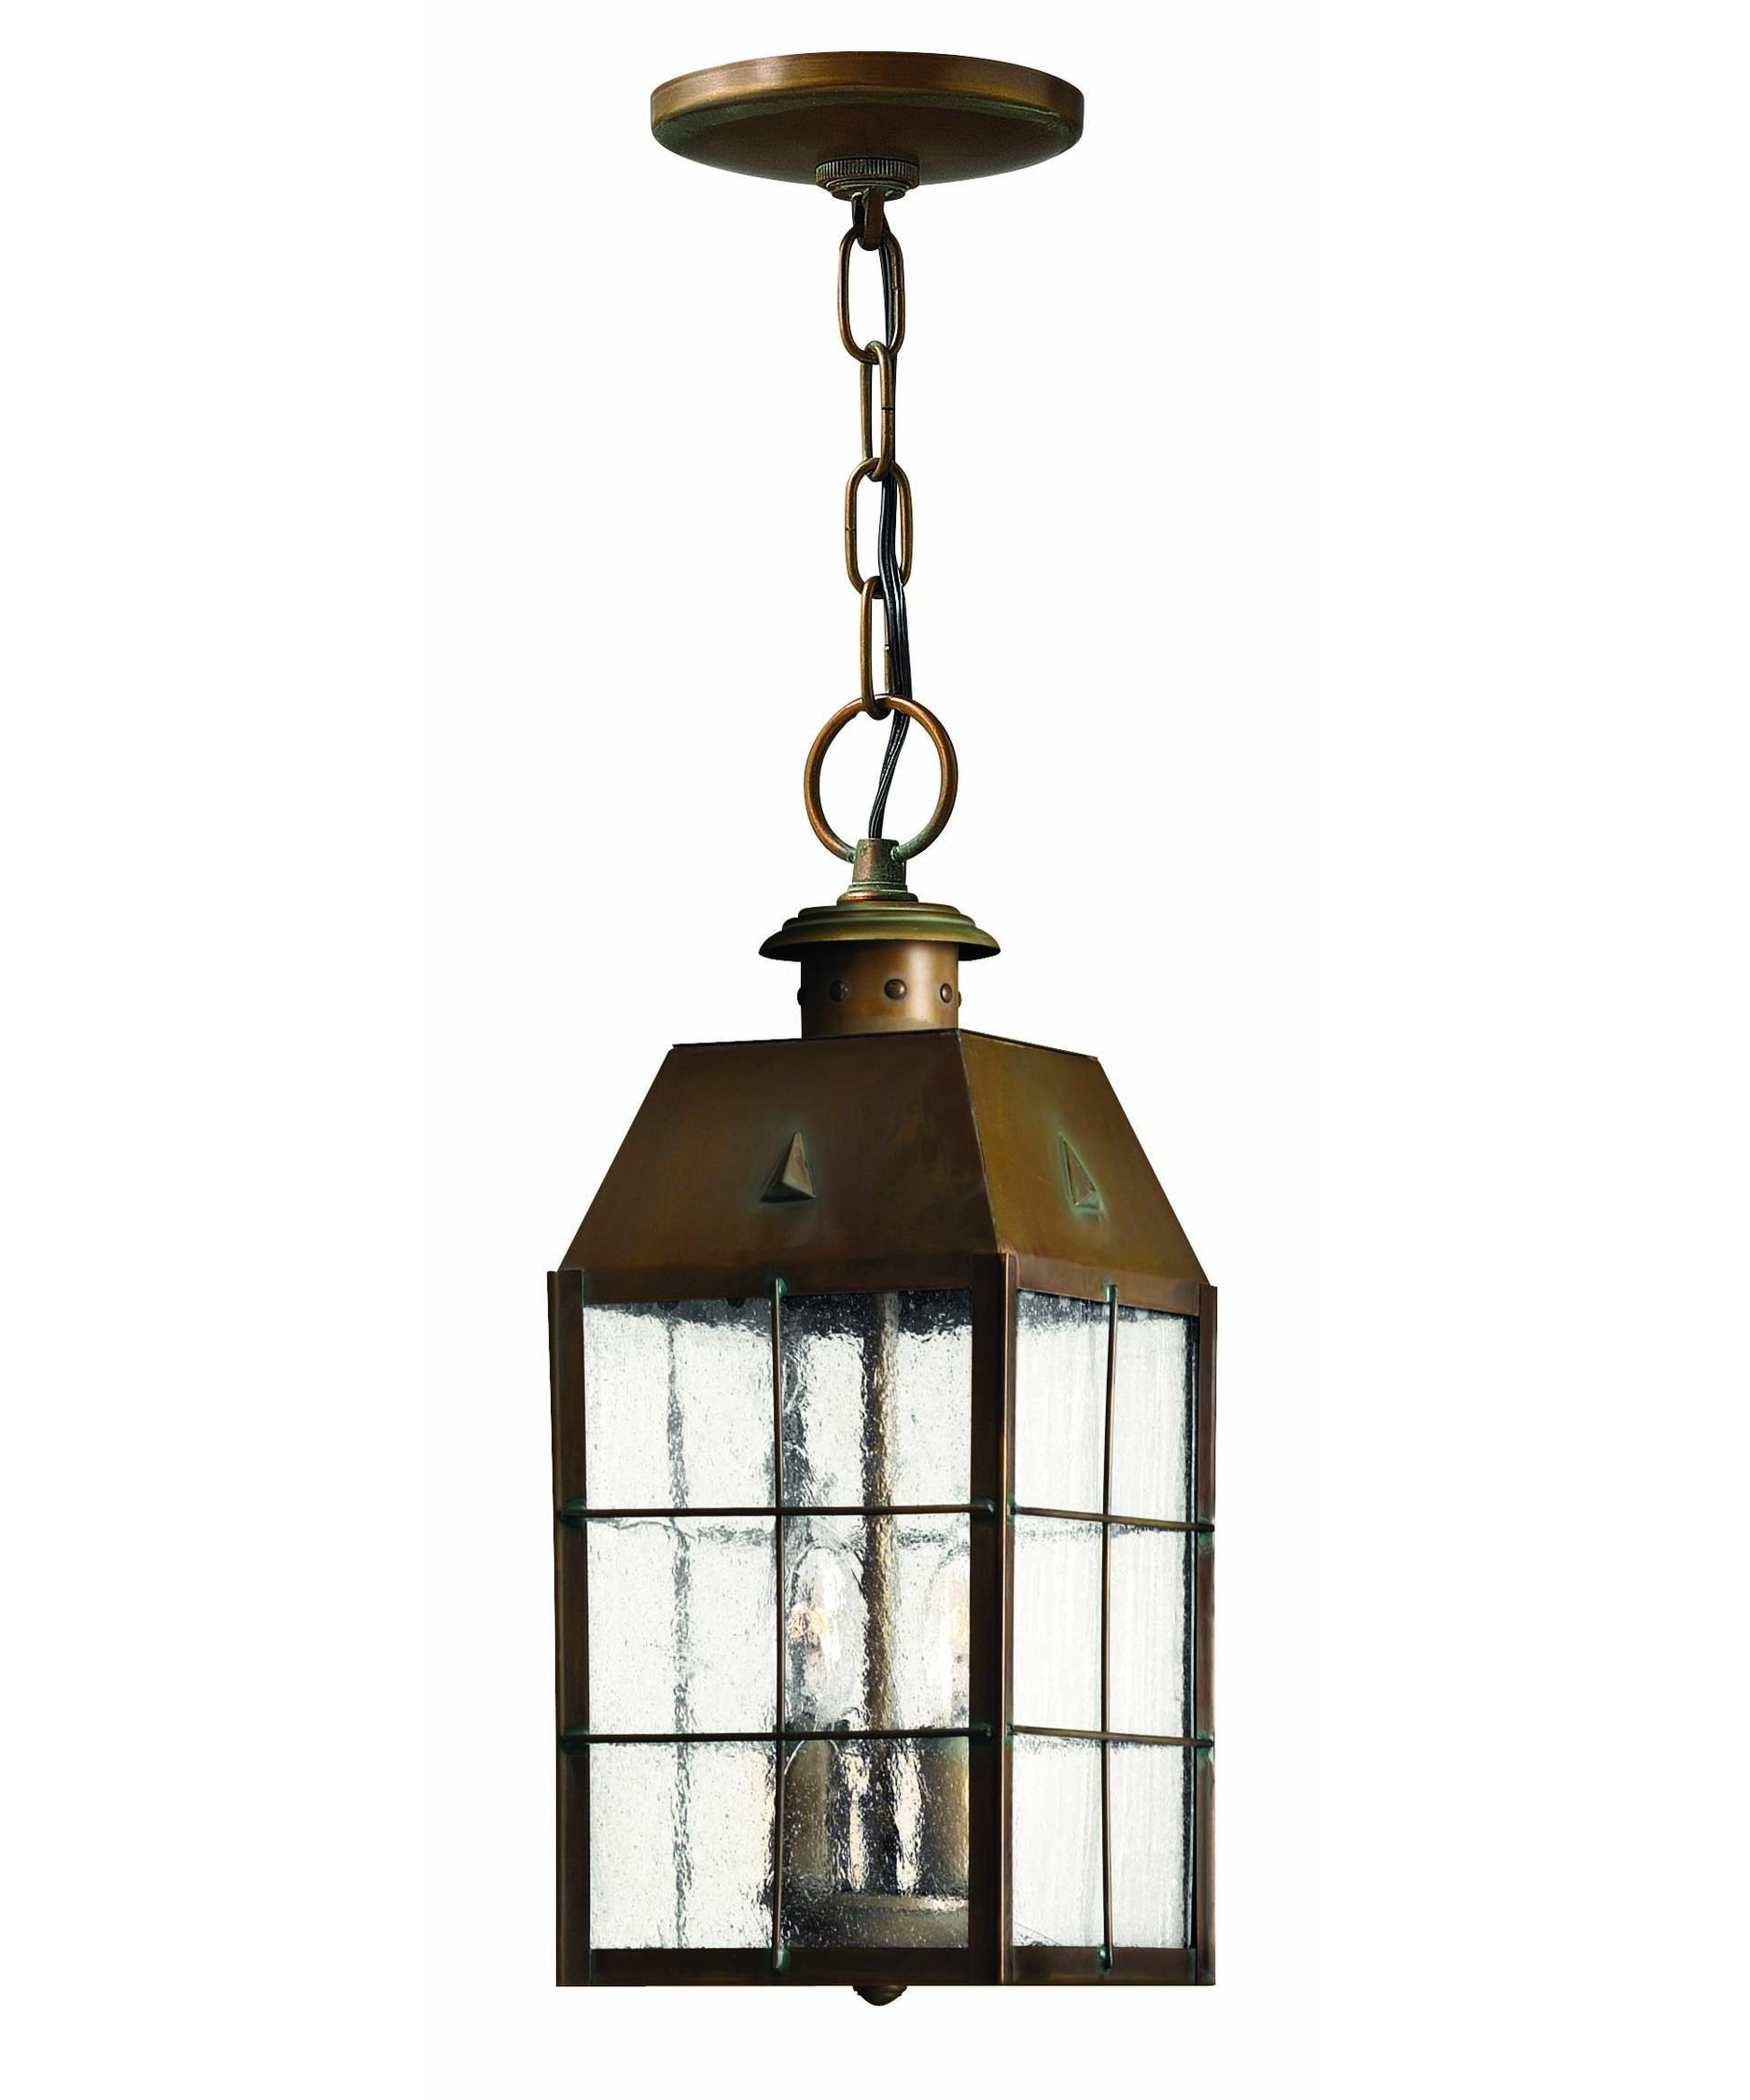 Hinkley Lighting 2372 Nantucket 6 Inch Wide 2 Light Outdoor Hanging Throughout Brass Porch Hinkley Lighting (#9 of 15)